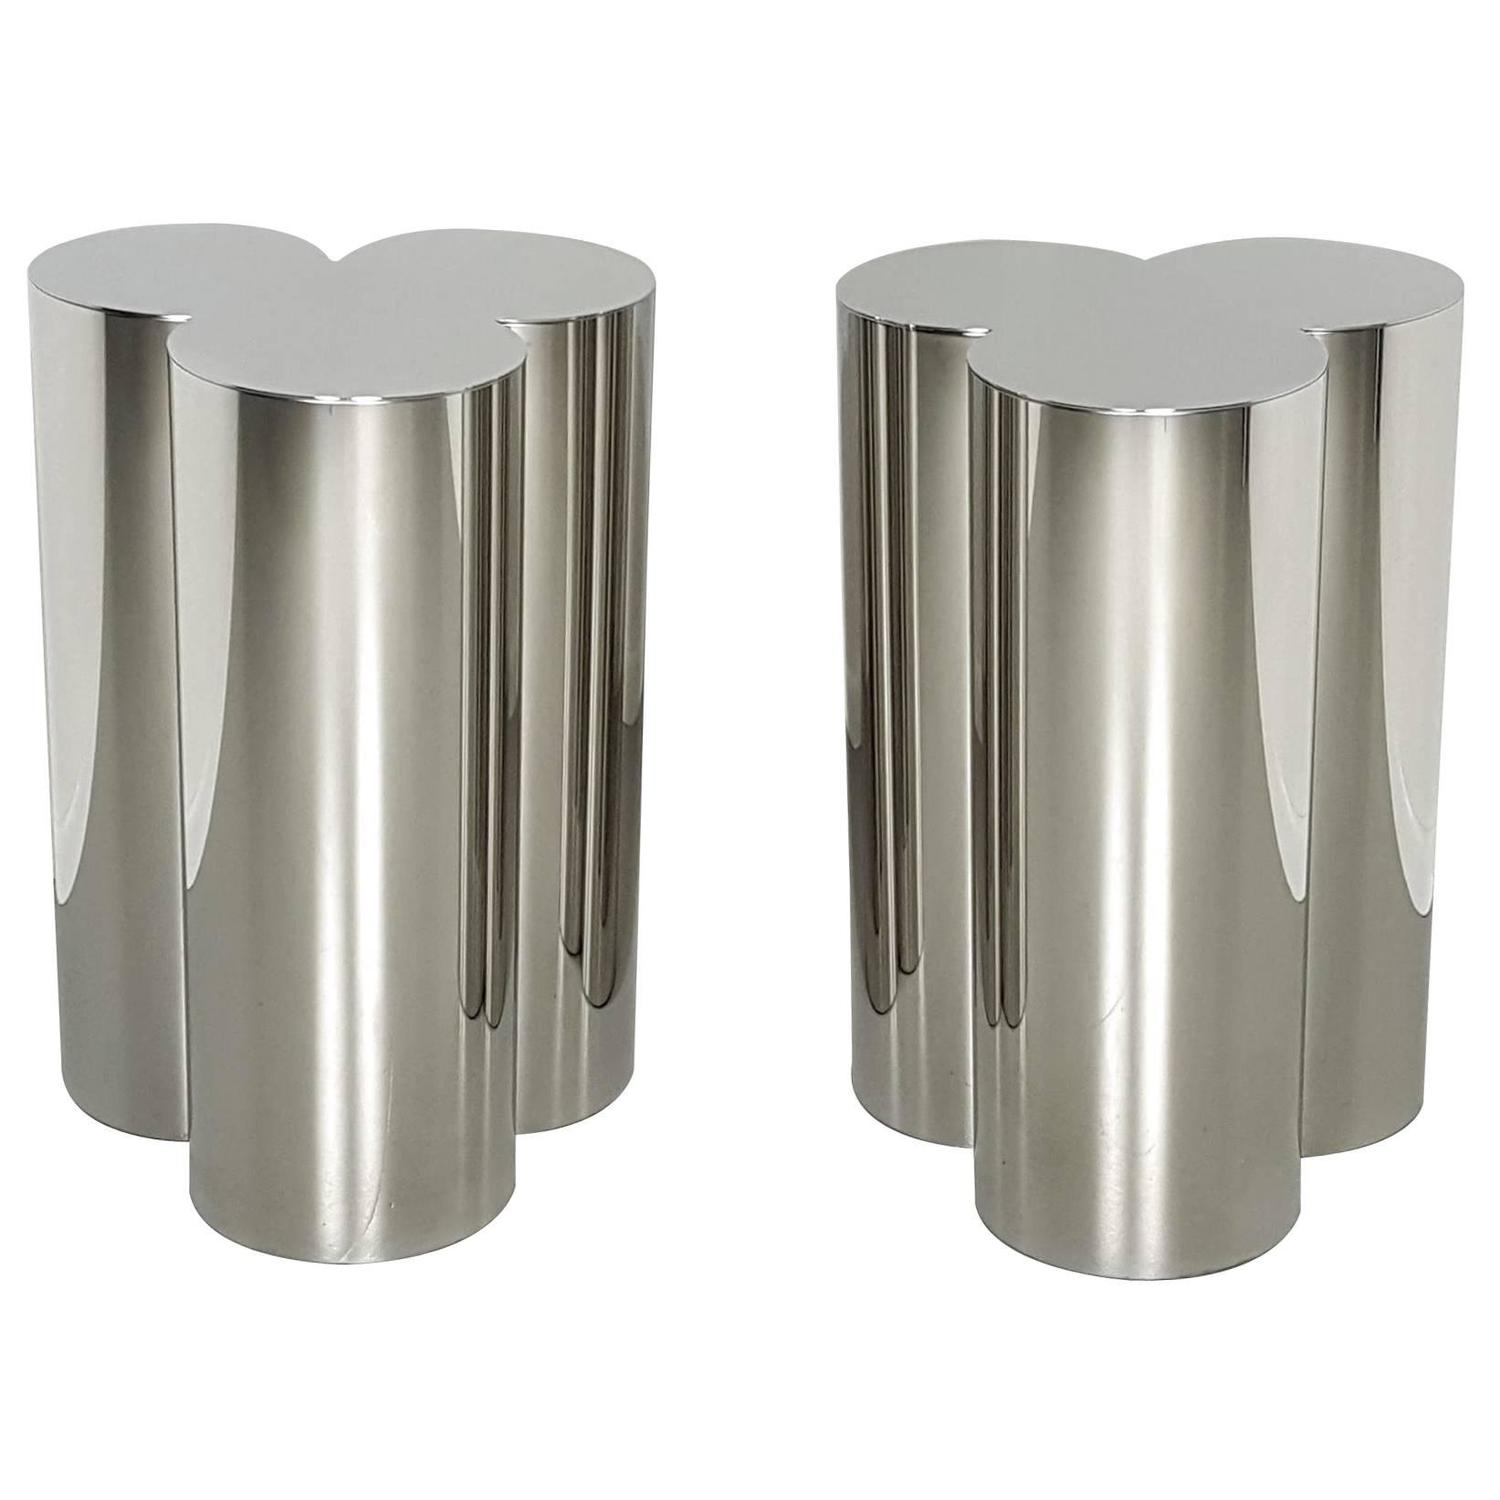 Custom Trefoil Dining Table Pedestal Bases In Mirror Polished Stainless Steel At 1stdibs